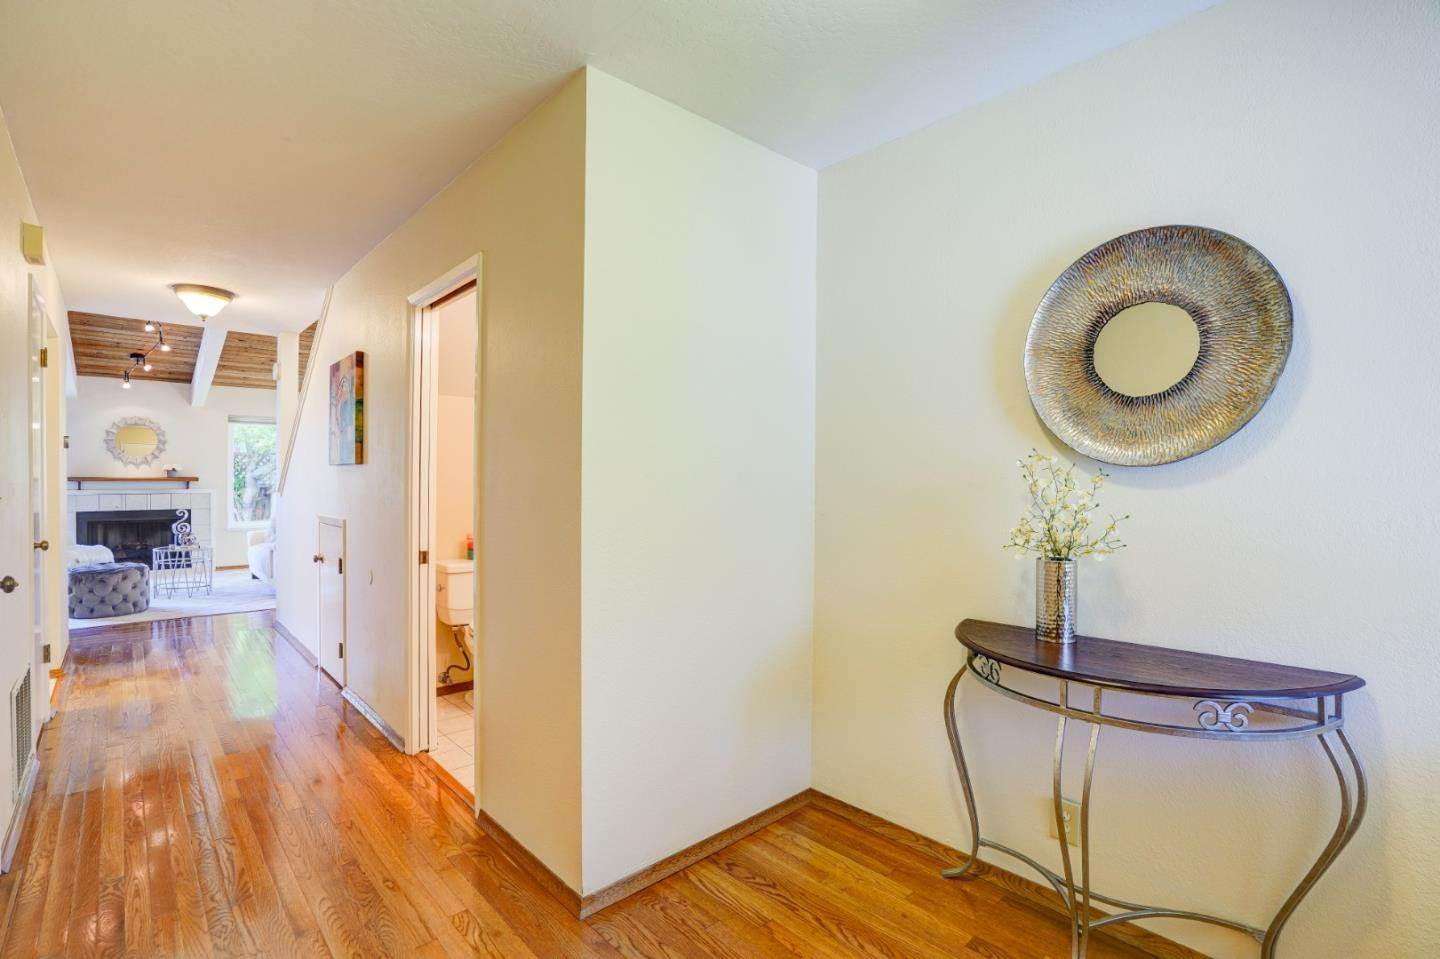 751 W Middlefield RD E, Mountain View, CA 94043